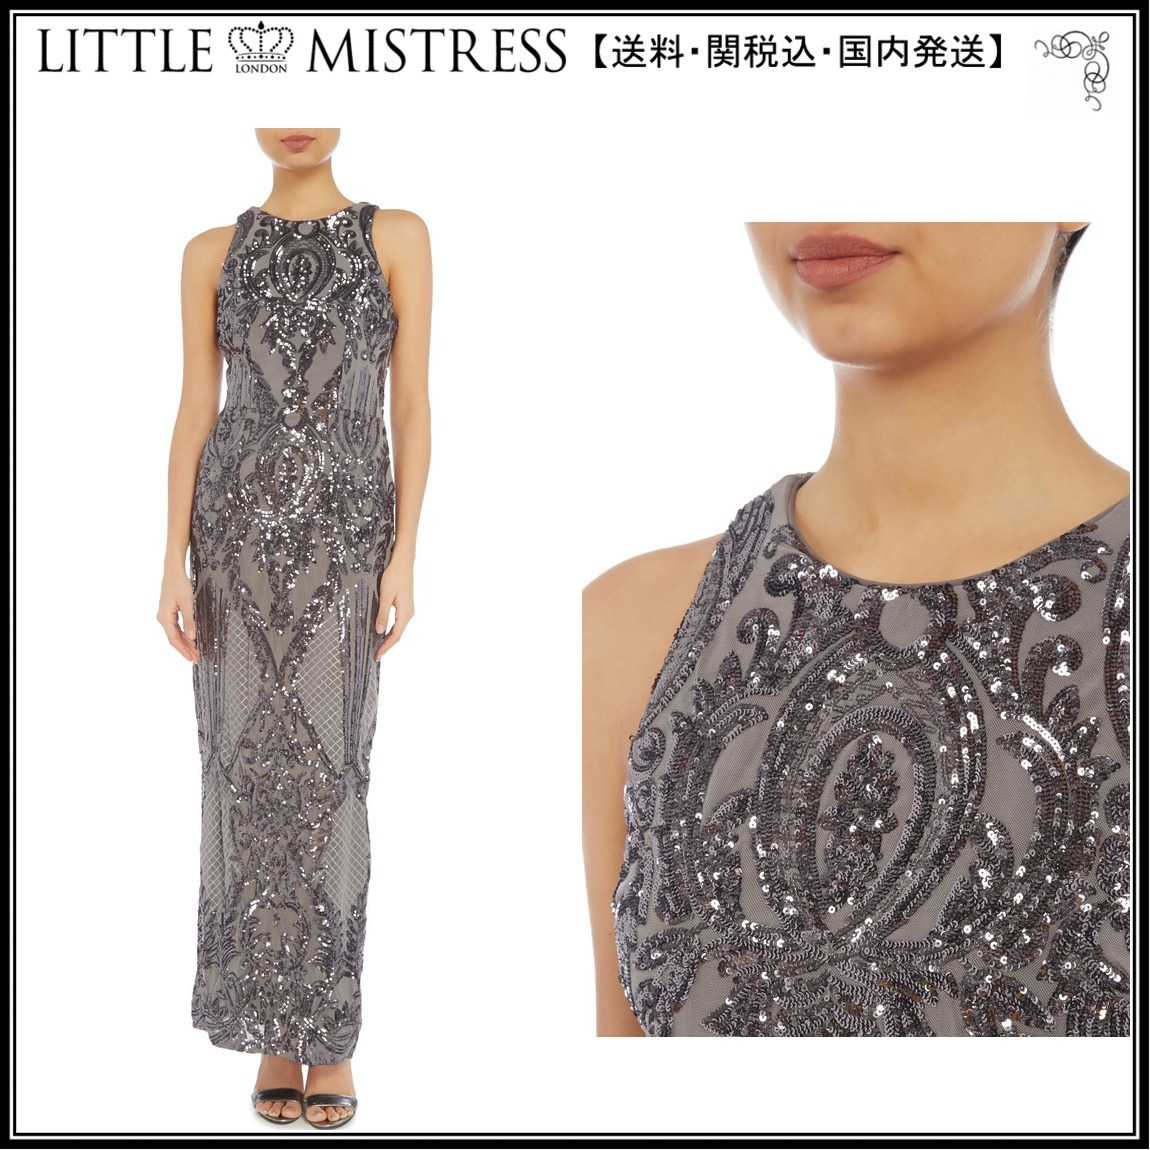 【海外限定】LittleMistress マキシドレス☆High Neck Sequin Dr